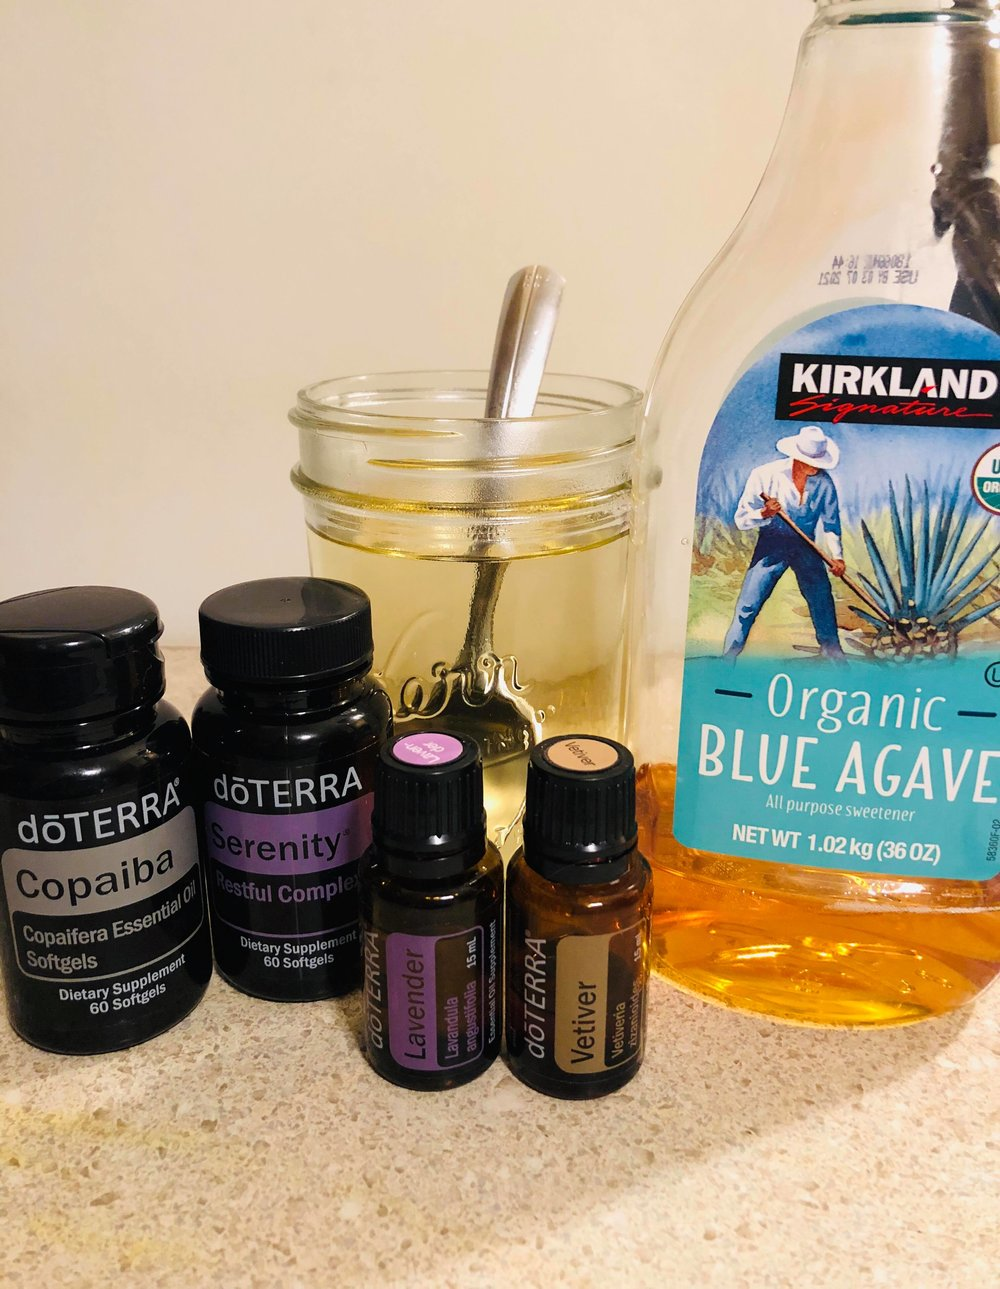 Sleep Like a Baby Tea - Try this combo 30-40 minutes before bed and see if you don't sleep like a baby.1 to 2 Copaiba Gel Caps1-to 2 Serenity Gel CapsMake a Tea of Warm water and honey. Add about 1 toothpick worth of lavender and vetiver. (I dip my toothpick in the bottle then stir into the warm water).Sip and Enjoy!!